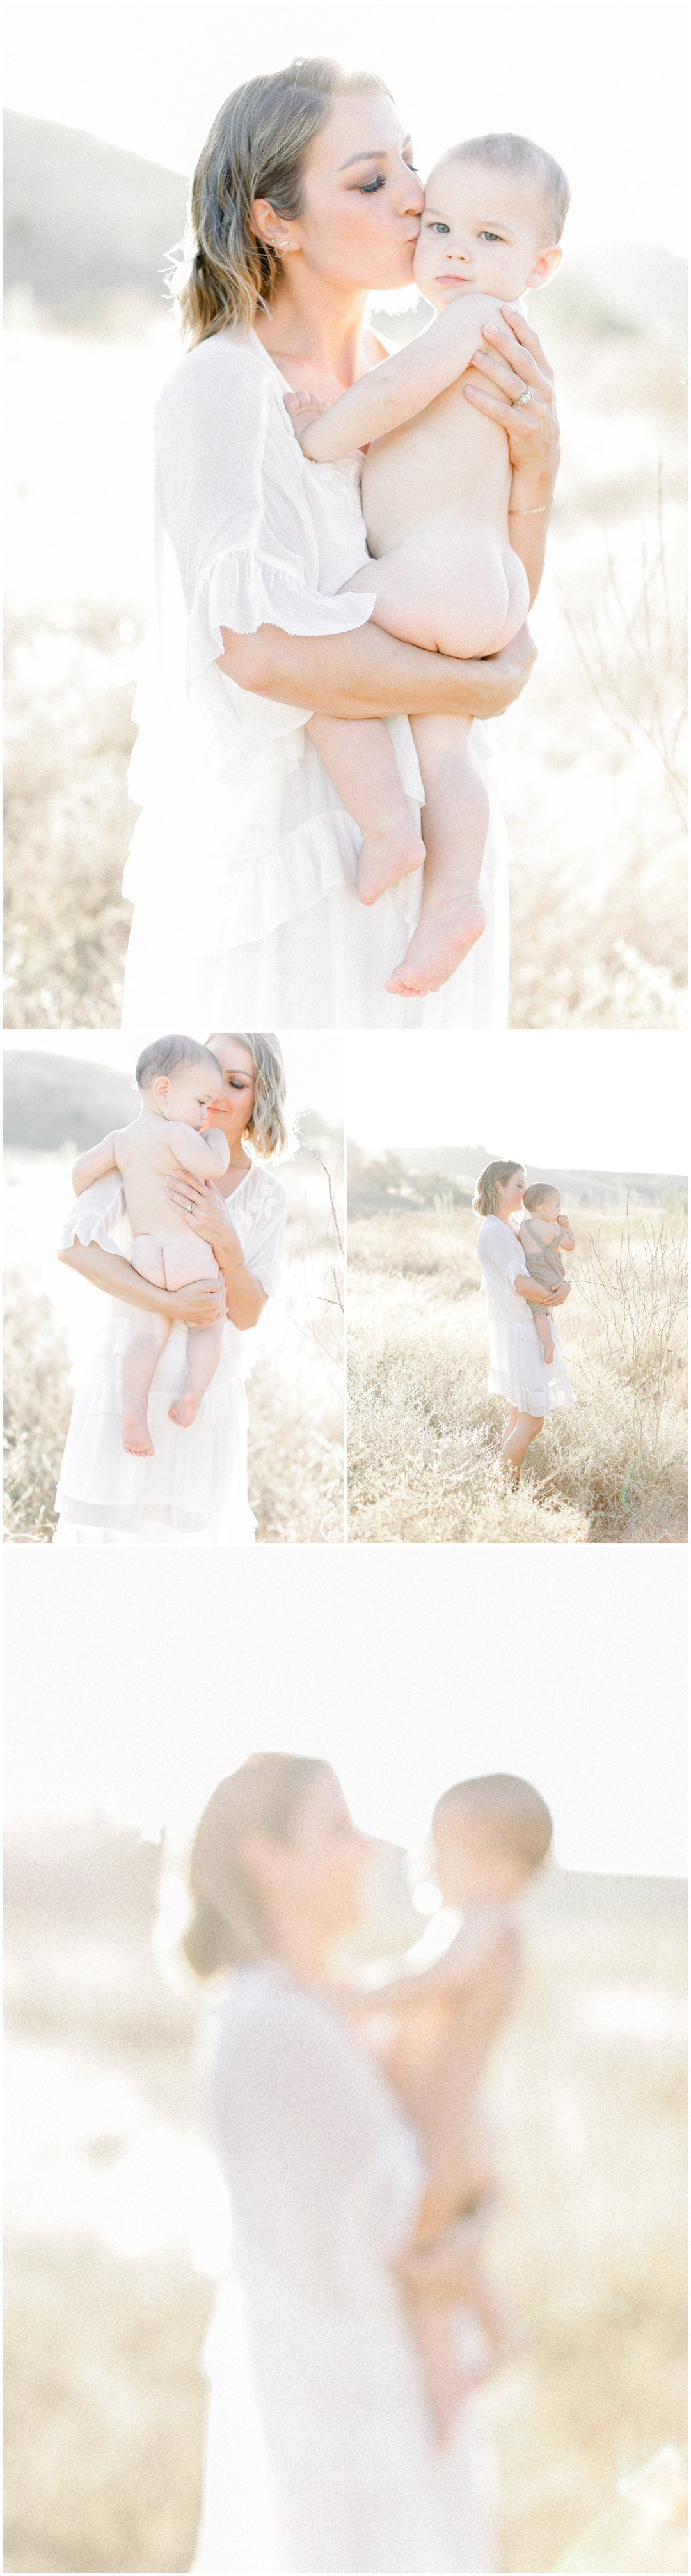 Newport_Beach_Family_Session_Orange_County_Family_Photographer_Thomas_Riley_Wilderness_Park_Carrie_Stotts_Sean_Stotts__4313.jpg